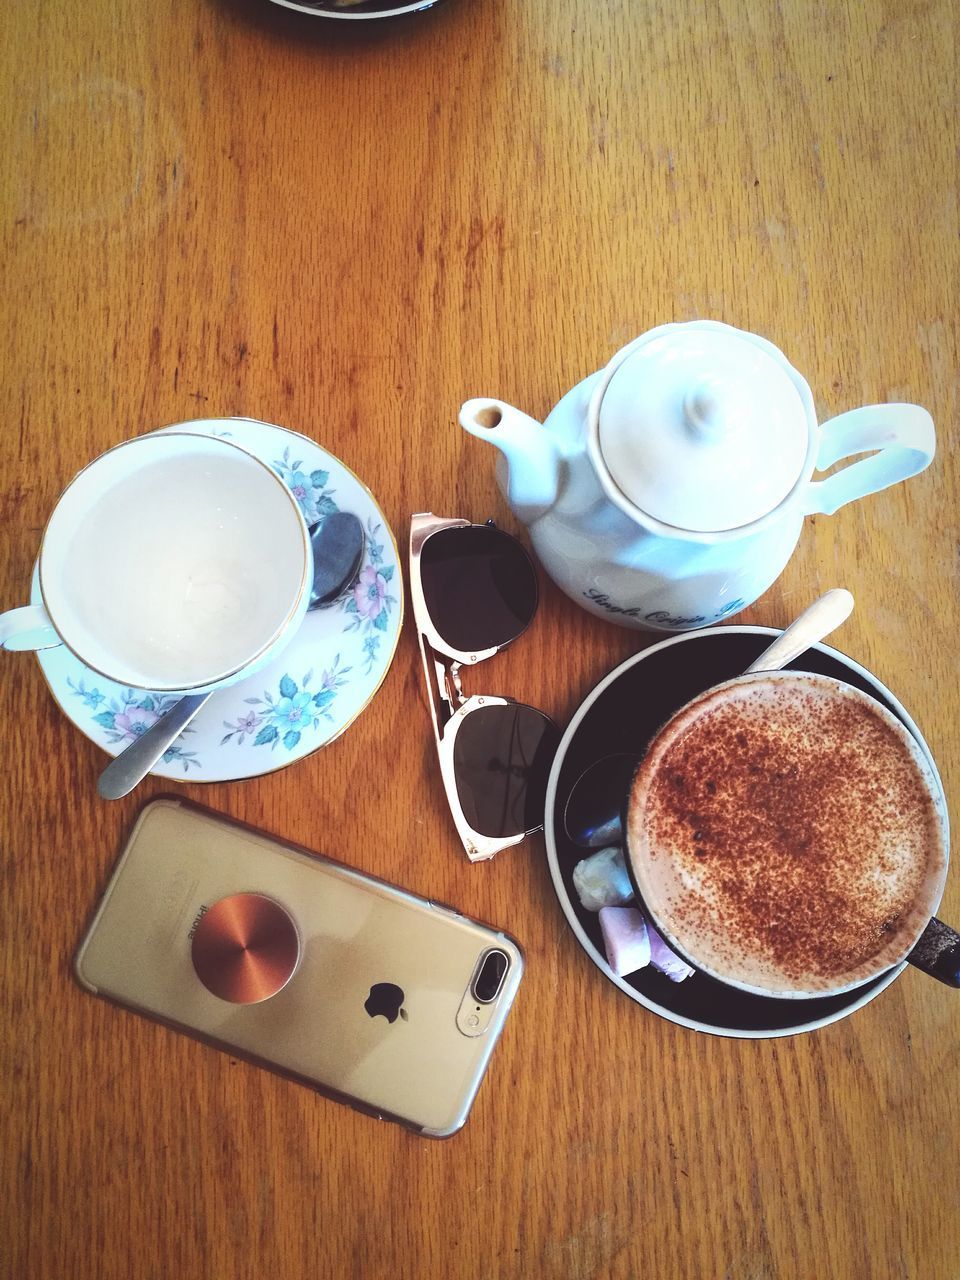 food and drink, table, drink, coffee cup, refreshment, high angle view, indoors, coffee - drink, no people, wood - material, freshness, frothy drink, food, day, close-up